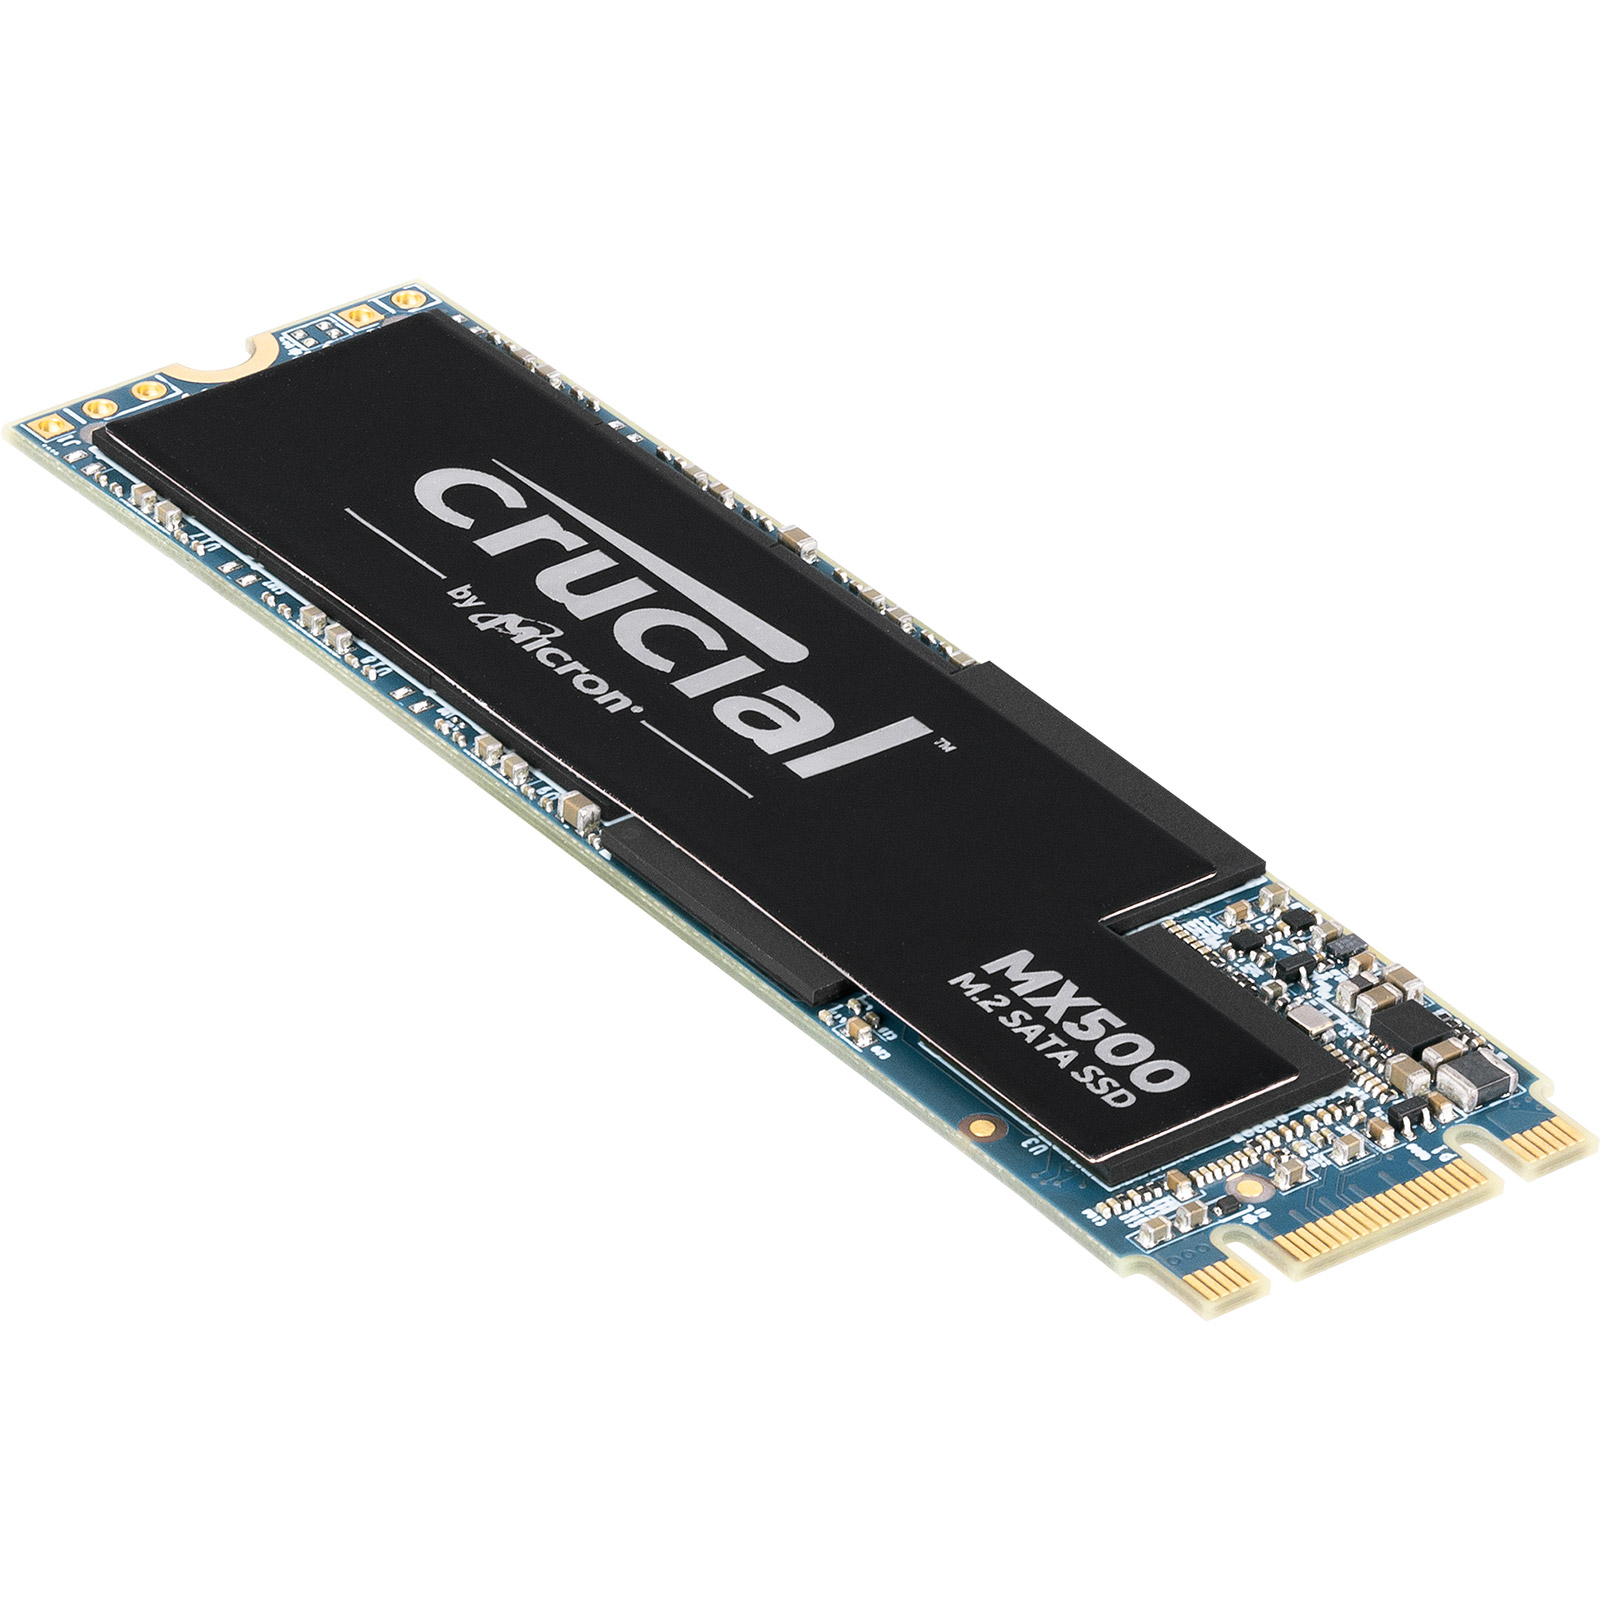 Disque SSD Crucial MX500 1 To M.2 Type 2280 SSD 1 To M.2 SATA 6Gb/s Type 2280